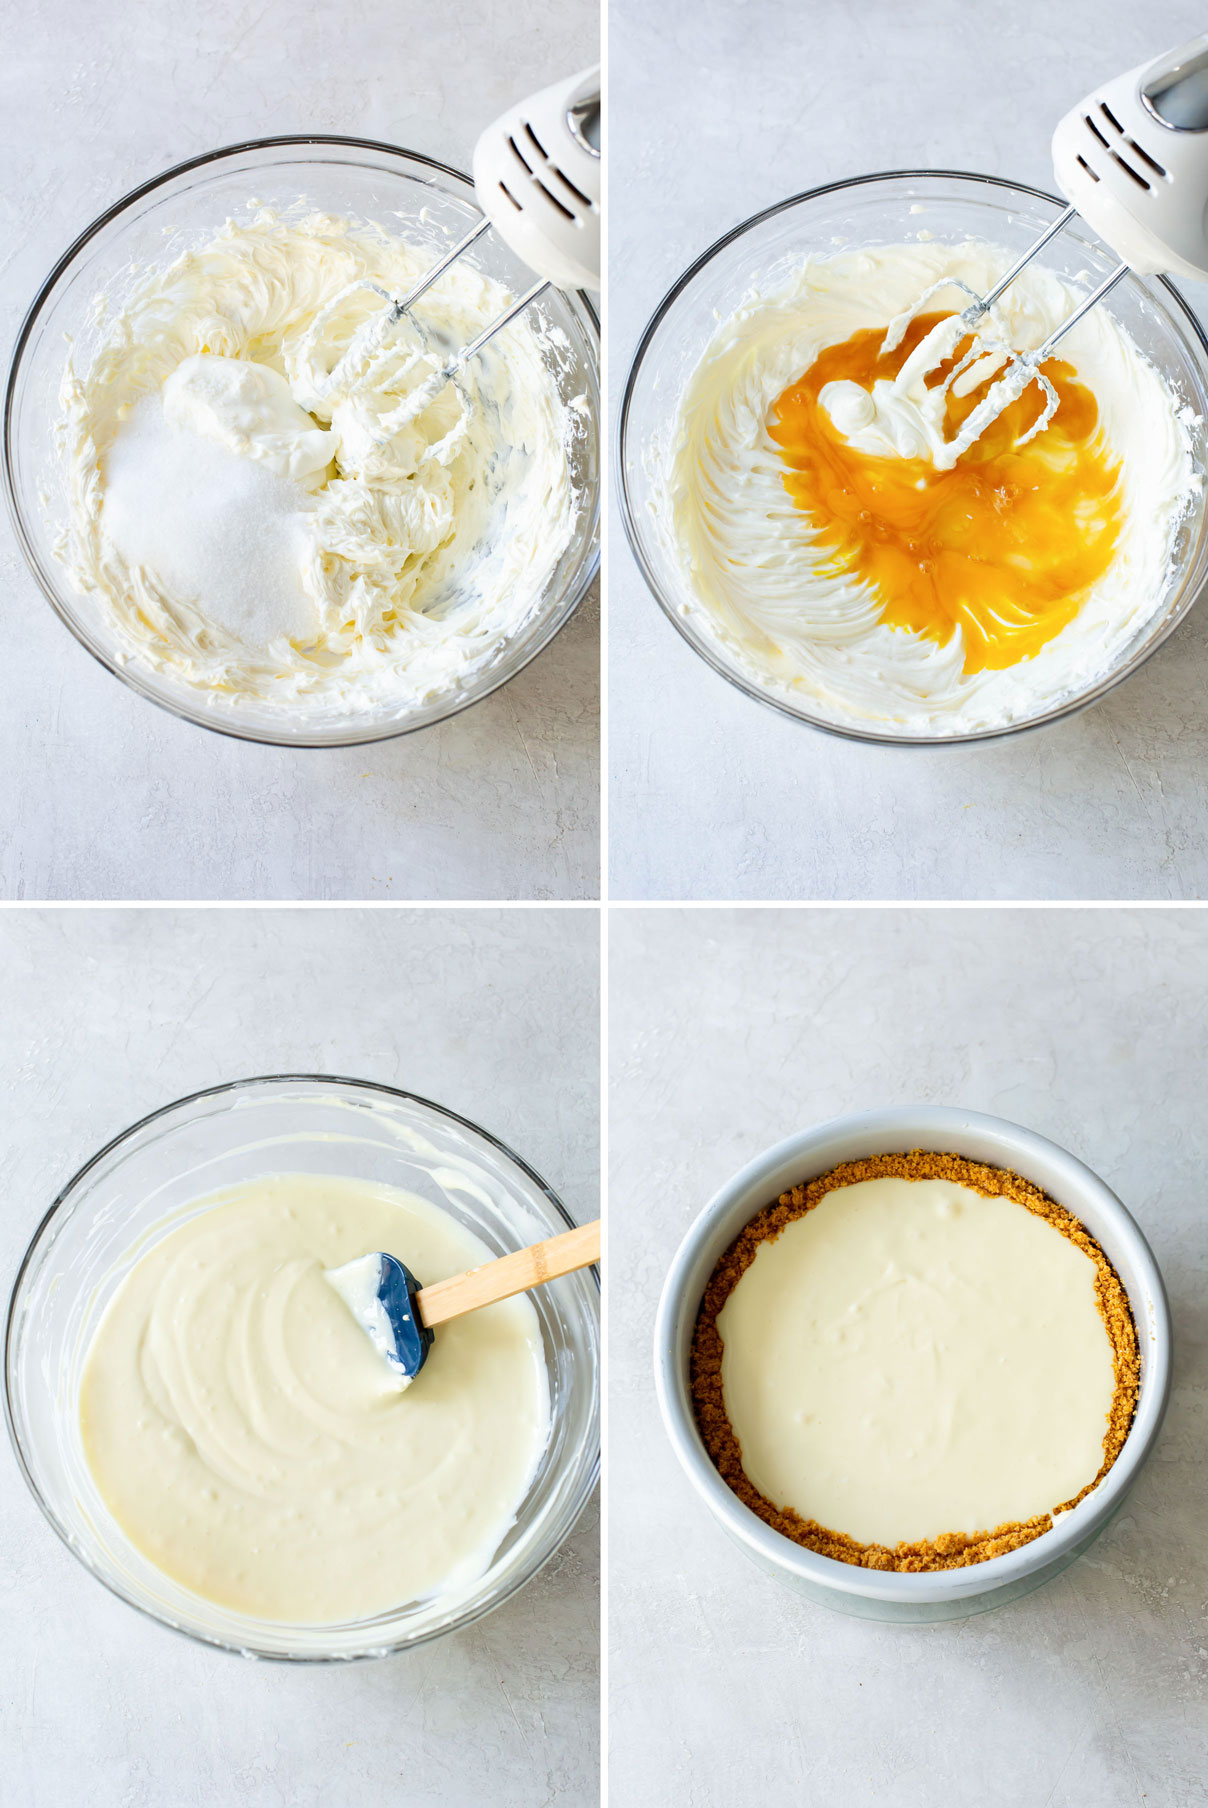 step by step photos showing how to make cheesecake filling